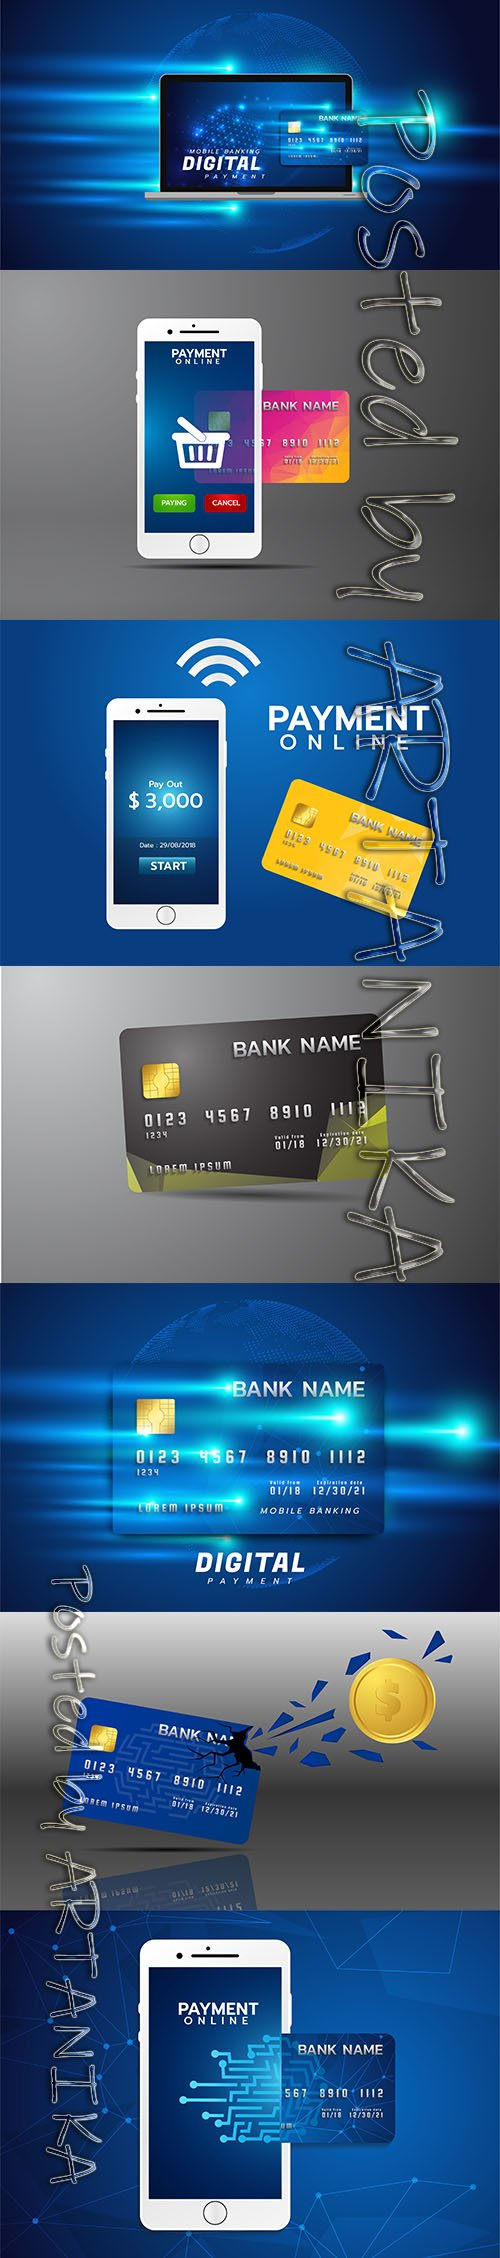 Internet Banking Illustration with Laptop Credit Card Pack